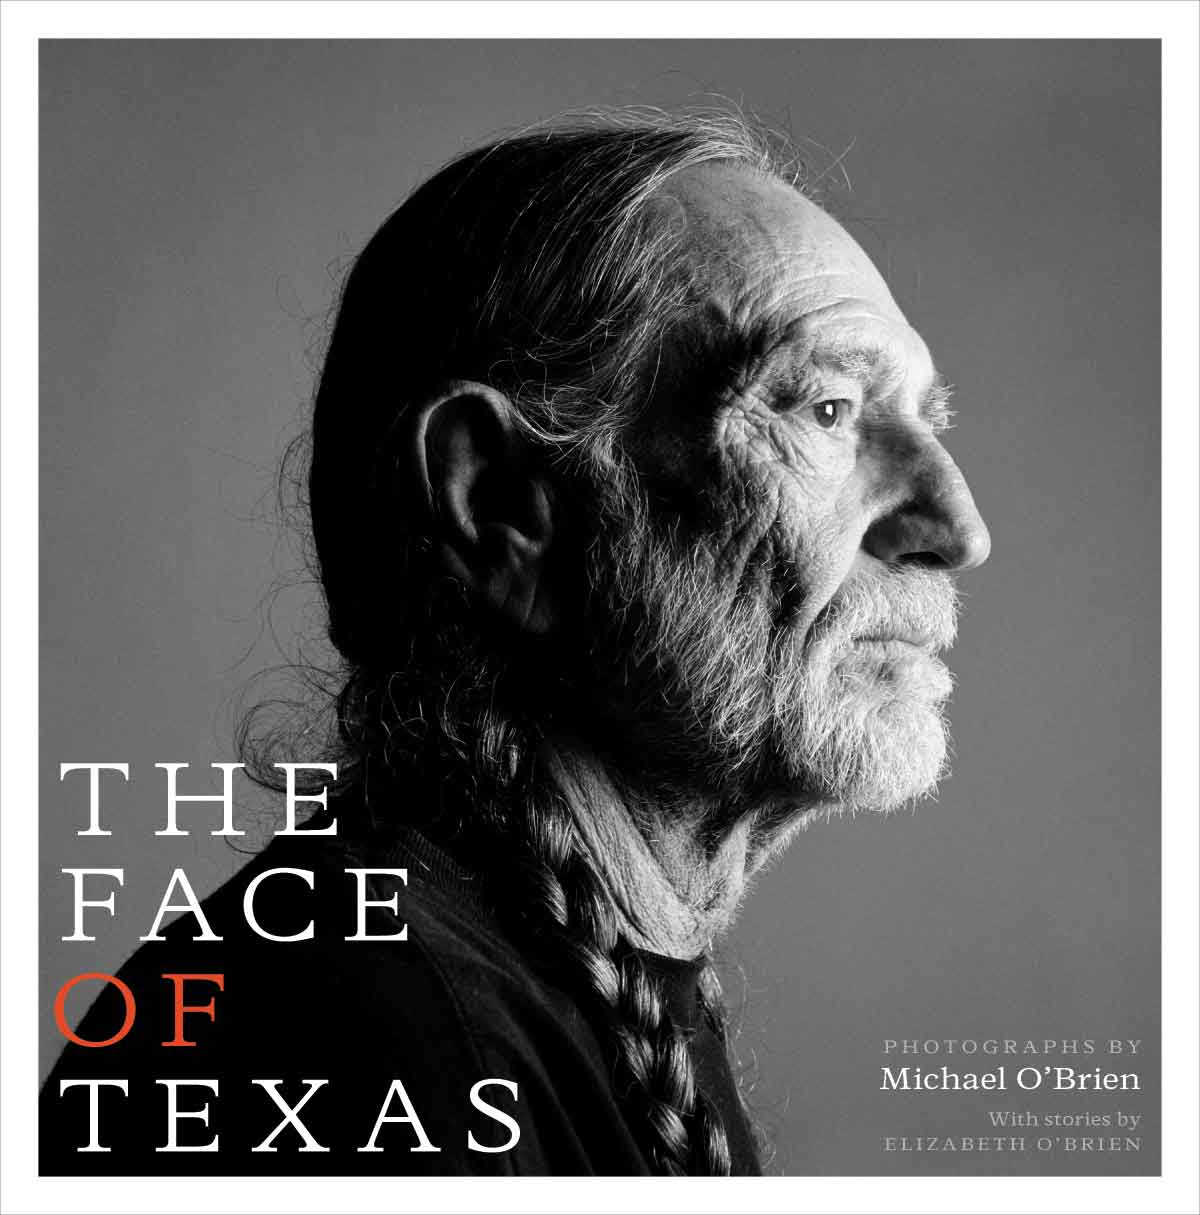 The Face of Texas